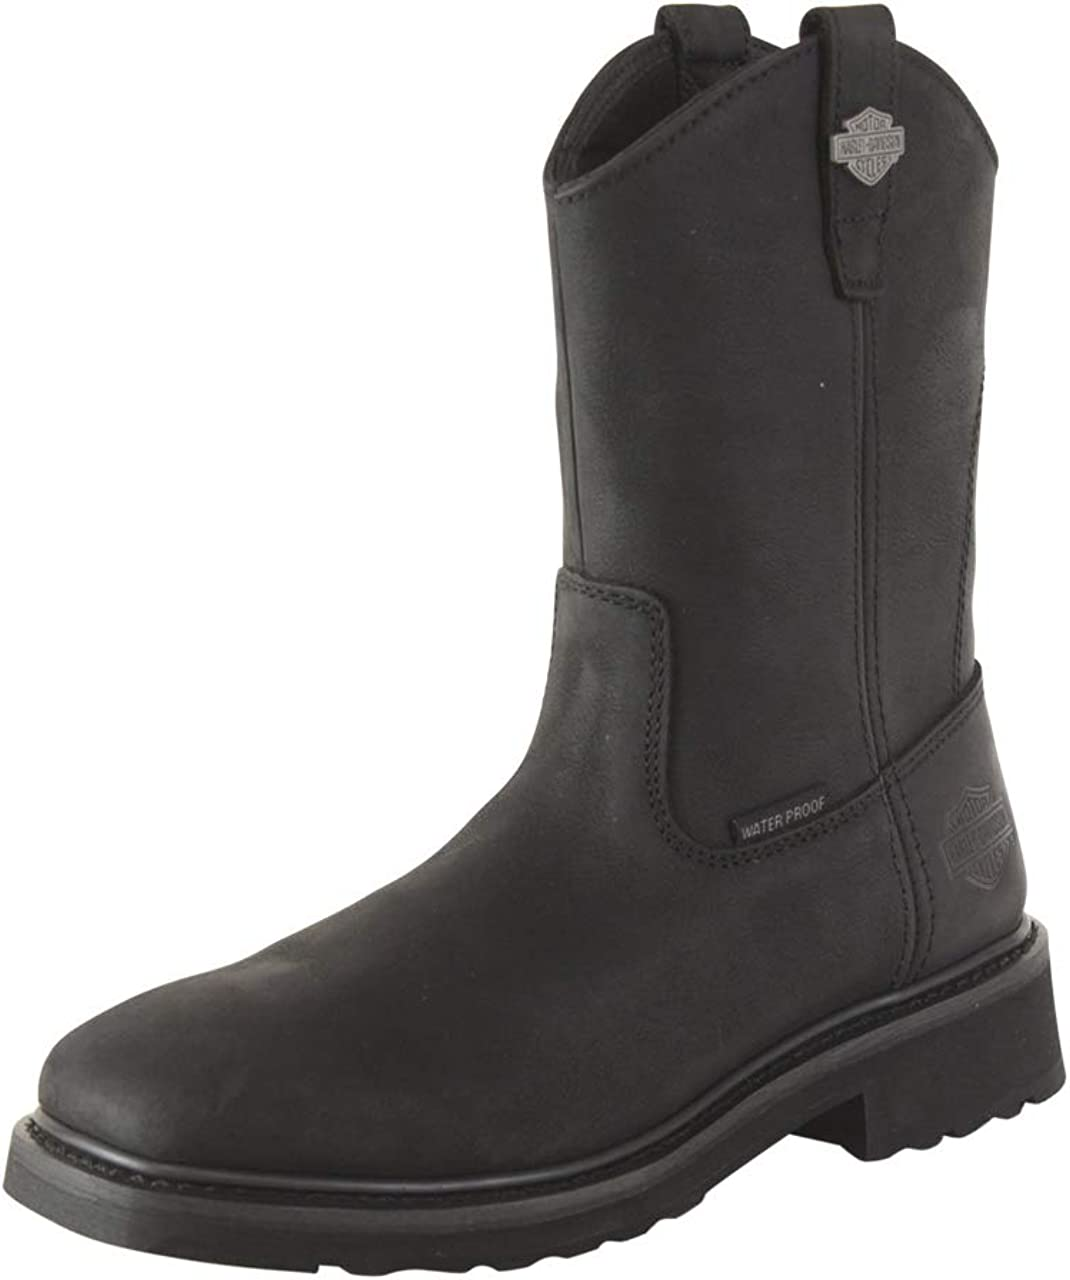 HARLEY-DAVIDSON FOOTWEAR Men's Boot Western Max 84% OFF Altman Our shop OFFers the best service